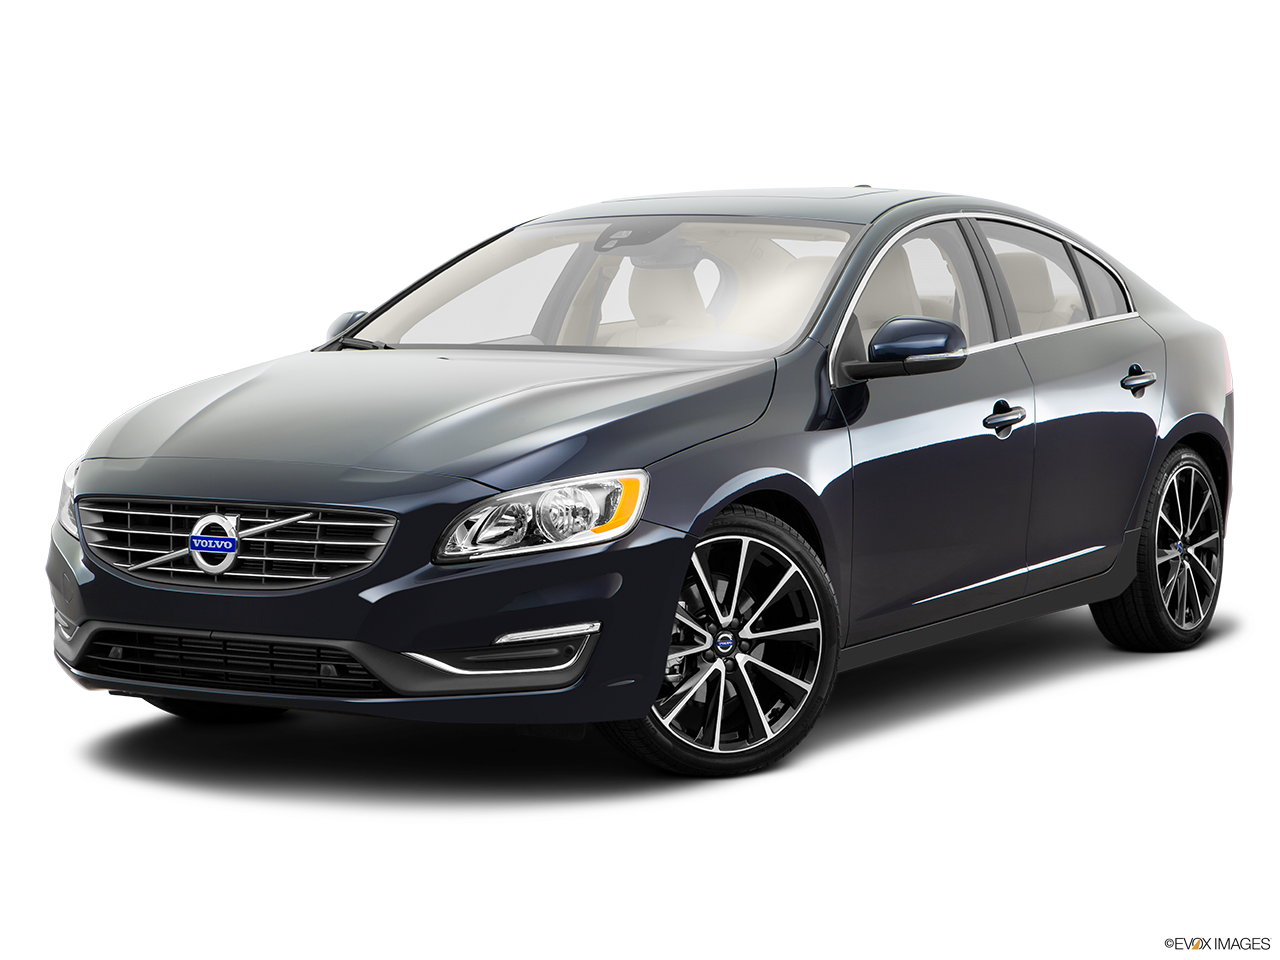 Test Drive A 2016 Volvo S60 at Galpin Volvo in Los Angeles